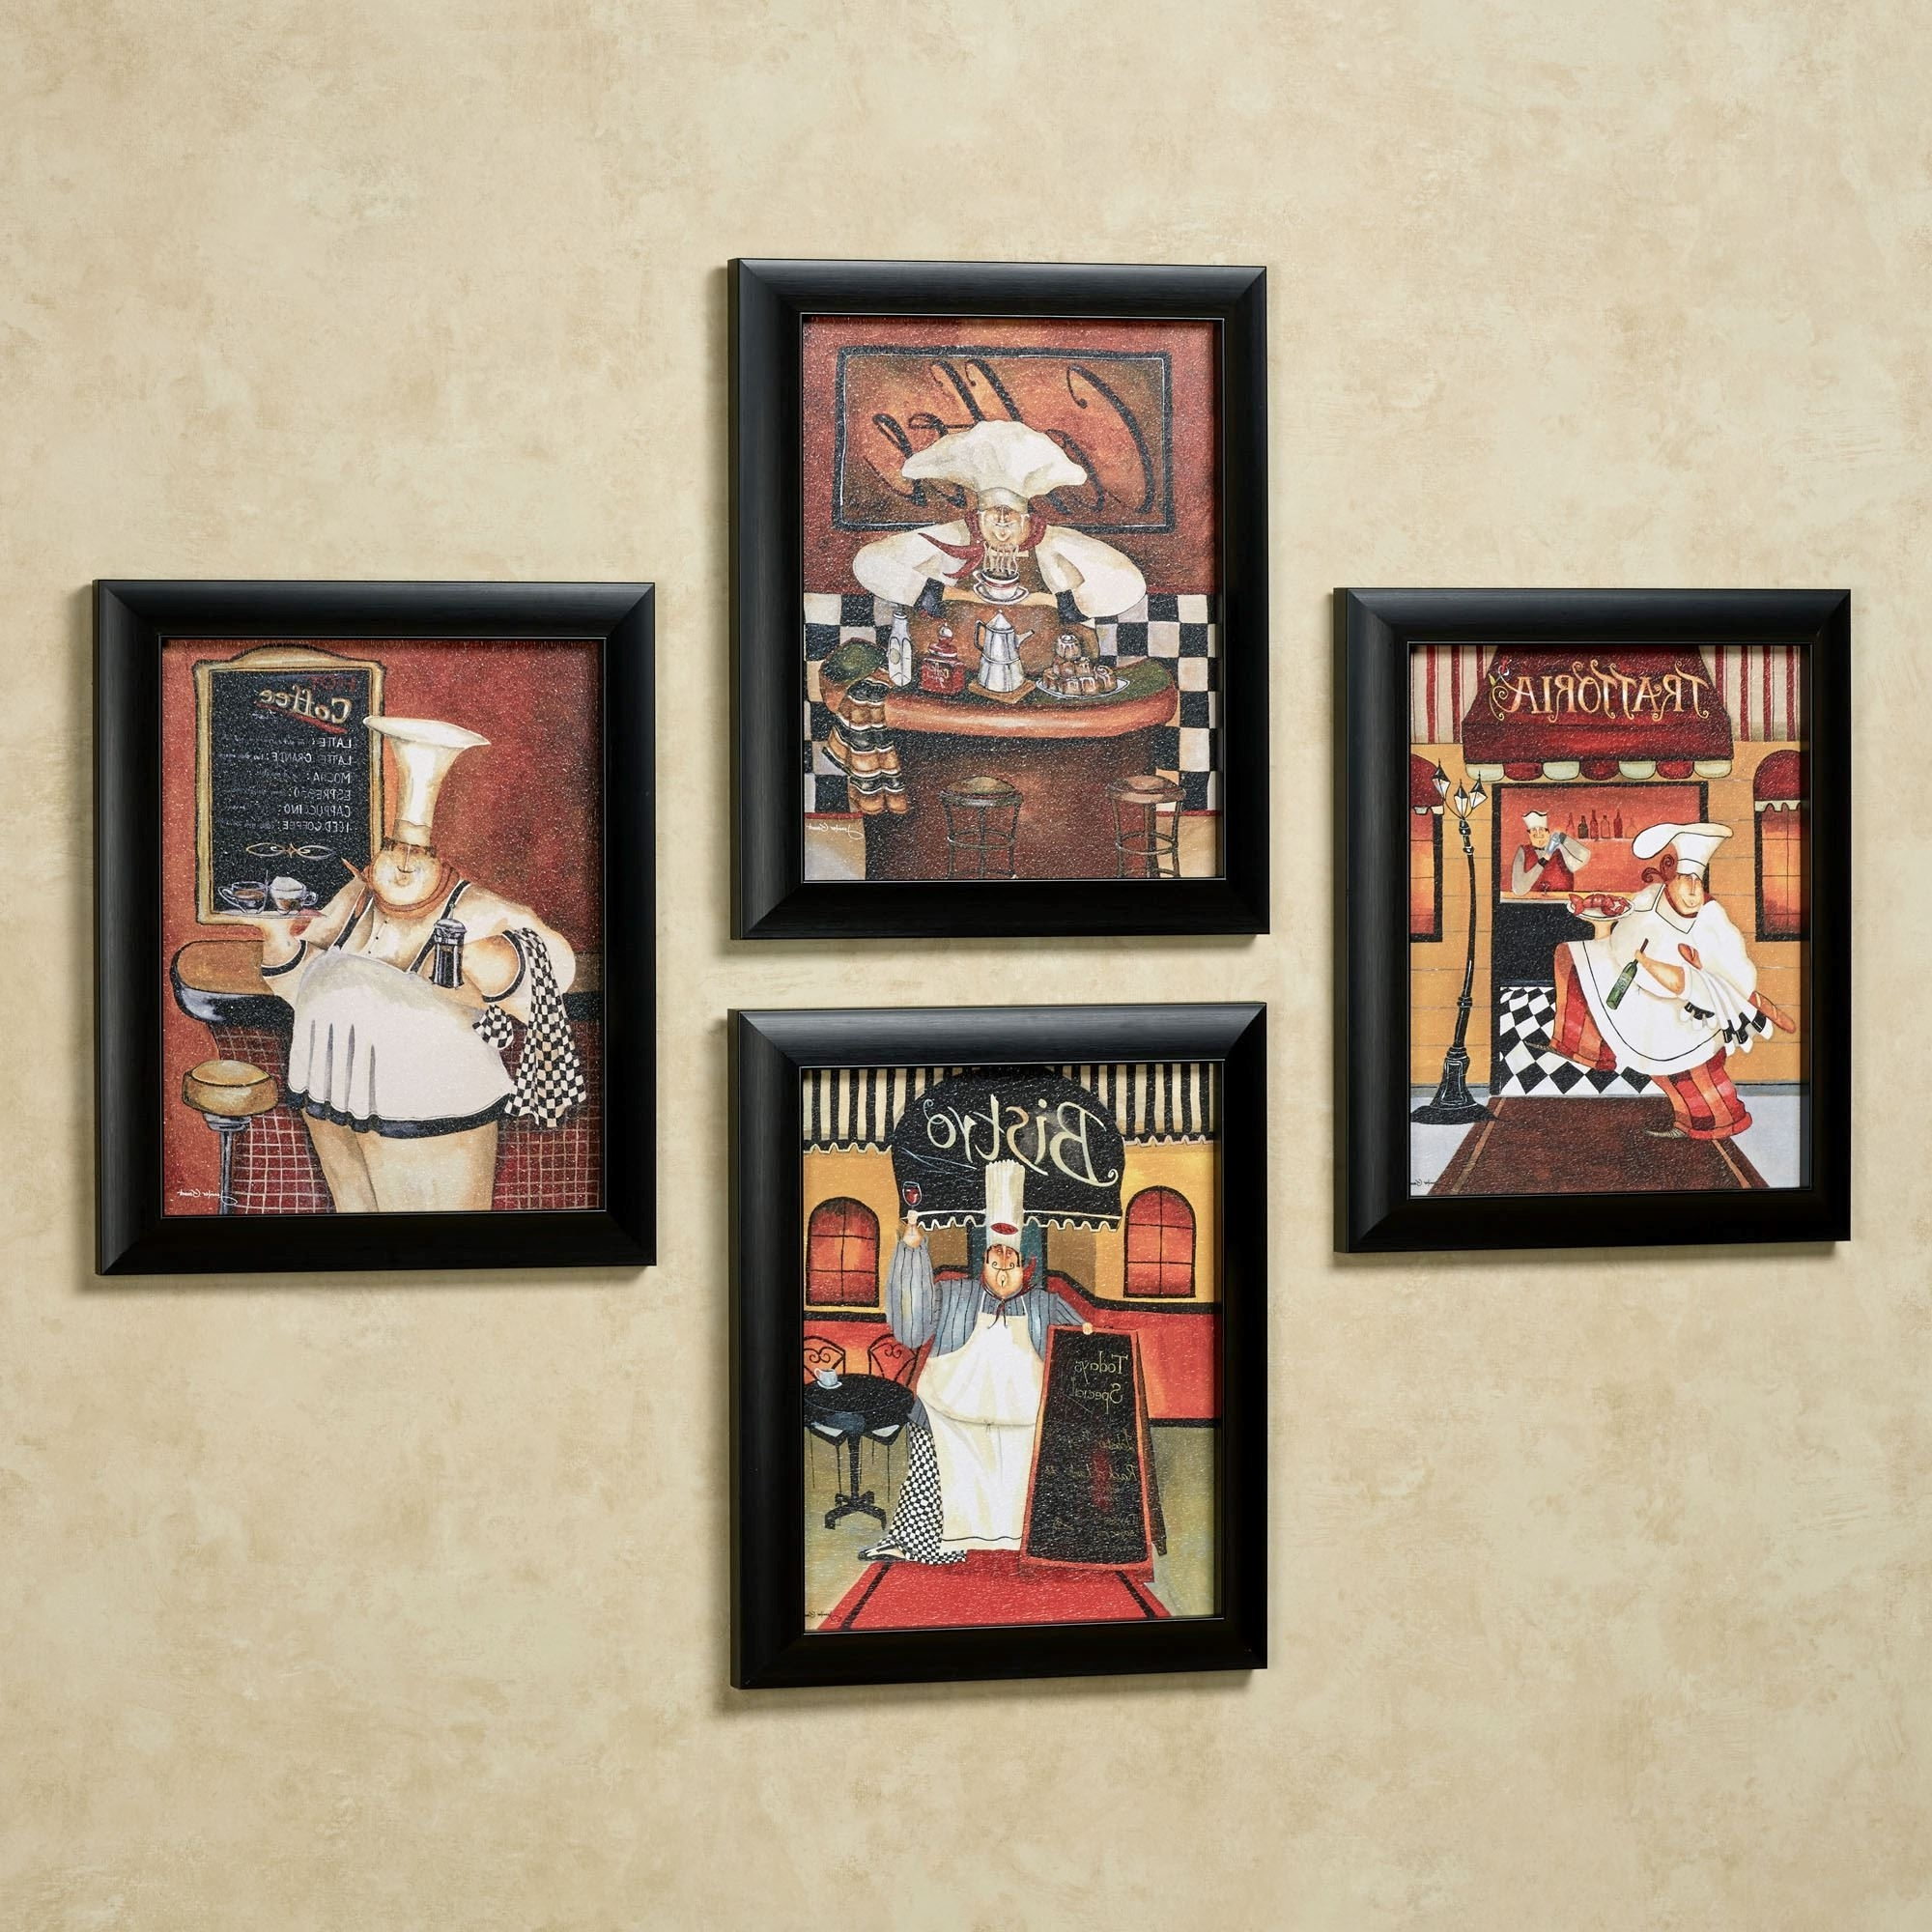 Sonoma Chef Framed Wall Art Set Intended For 2017 Wall Art Sets (View 8 of 15)